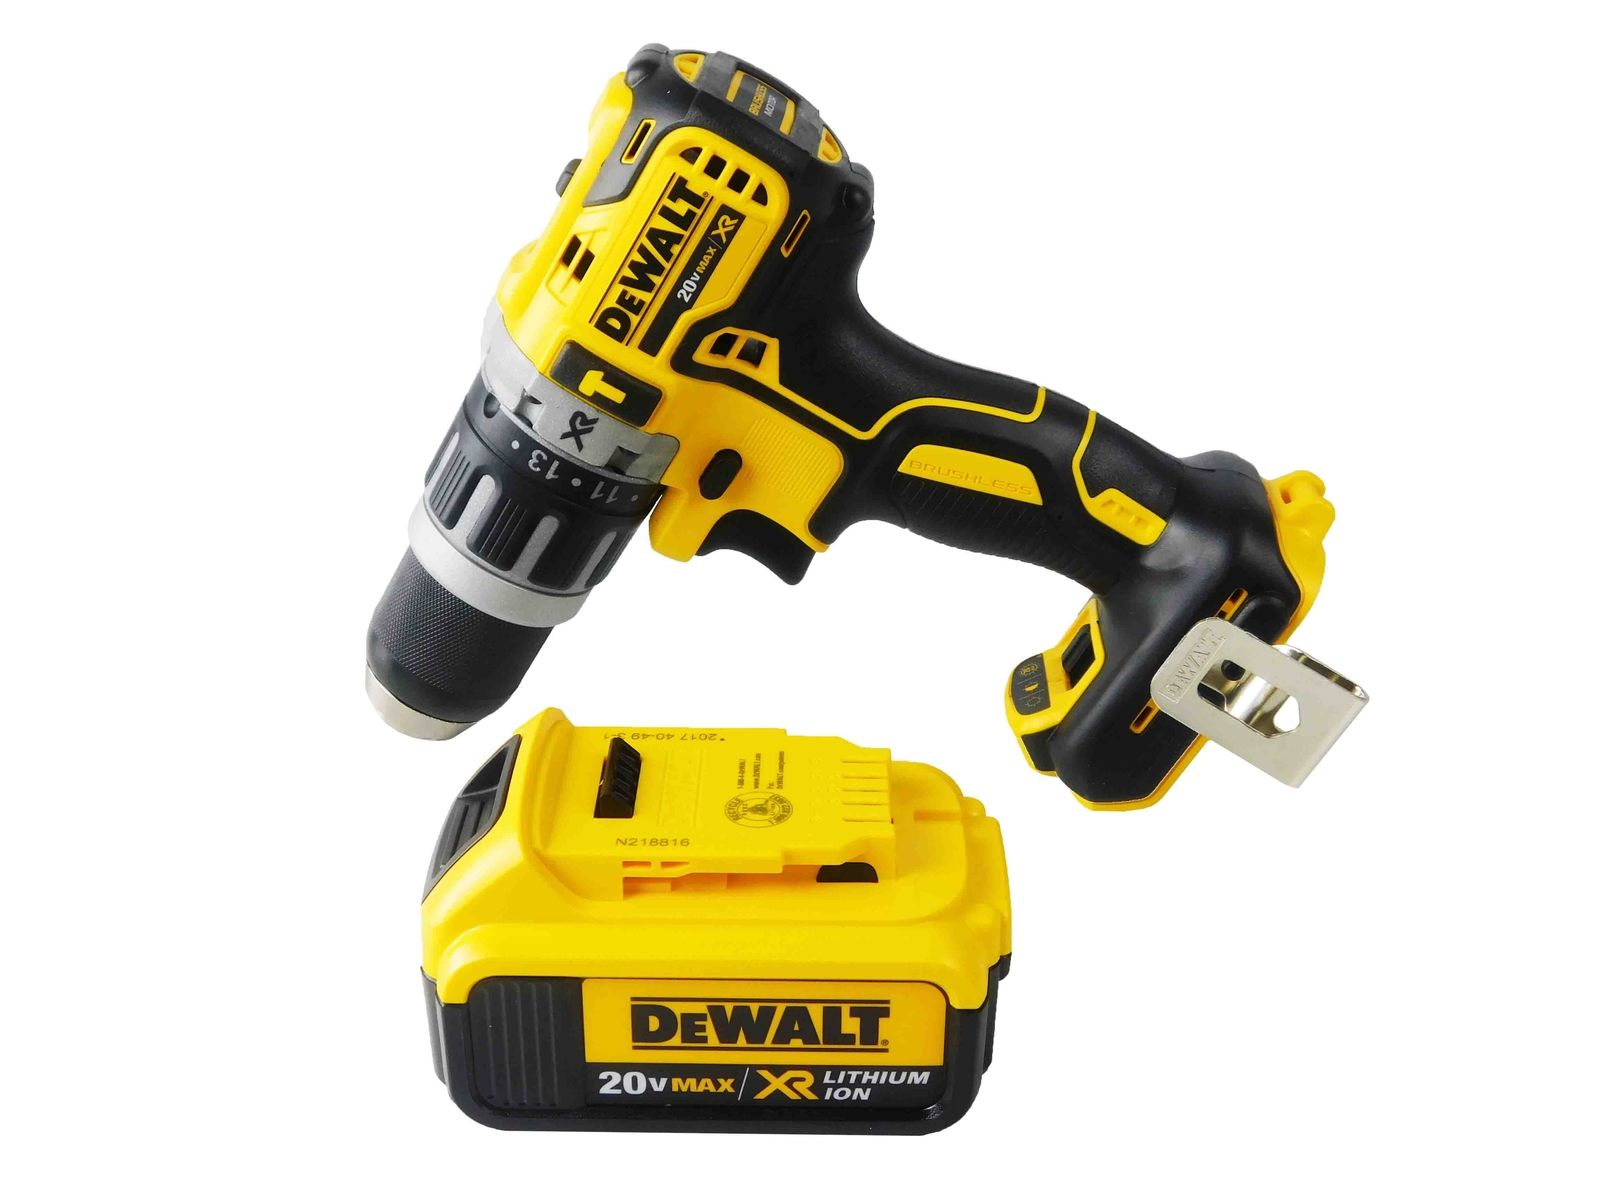 Dewalt-DCD796B-20V-Brushless-Hammer-Drill-DCB204-4-Ah-Battery-Pack-image-1